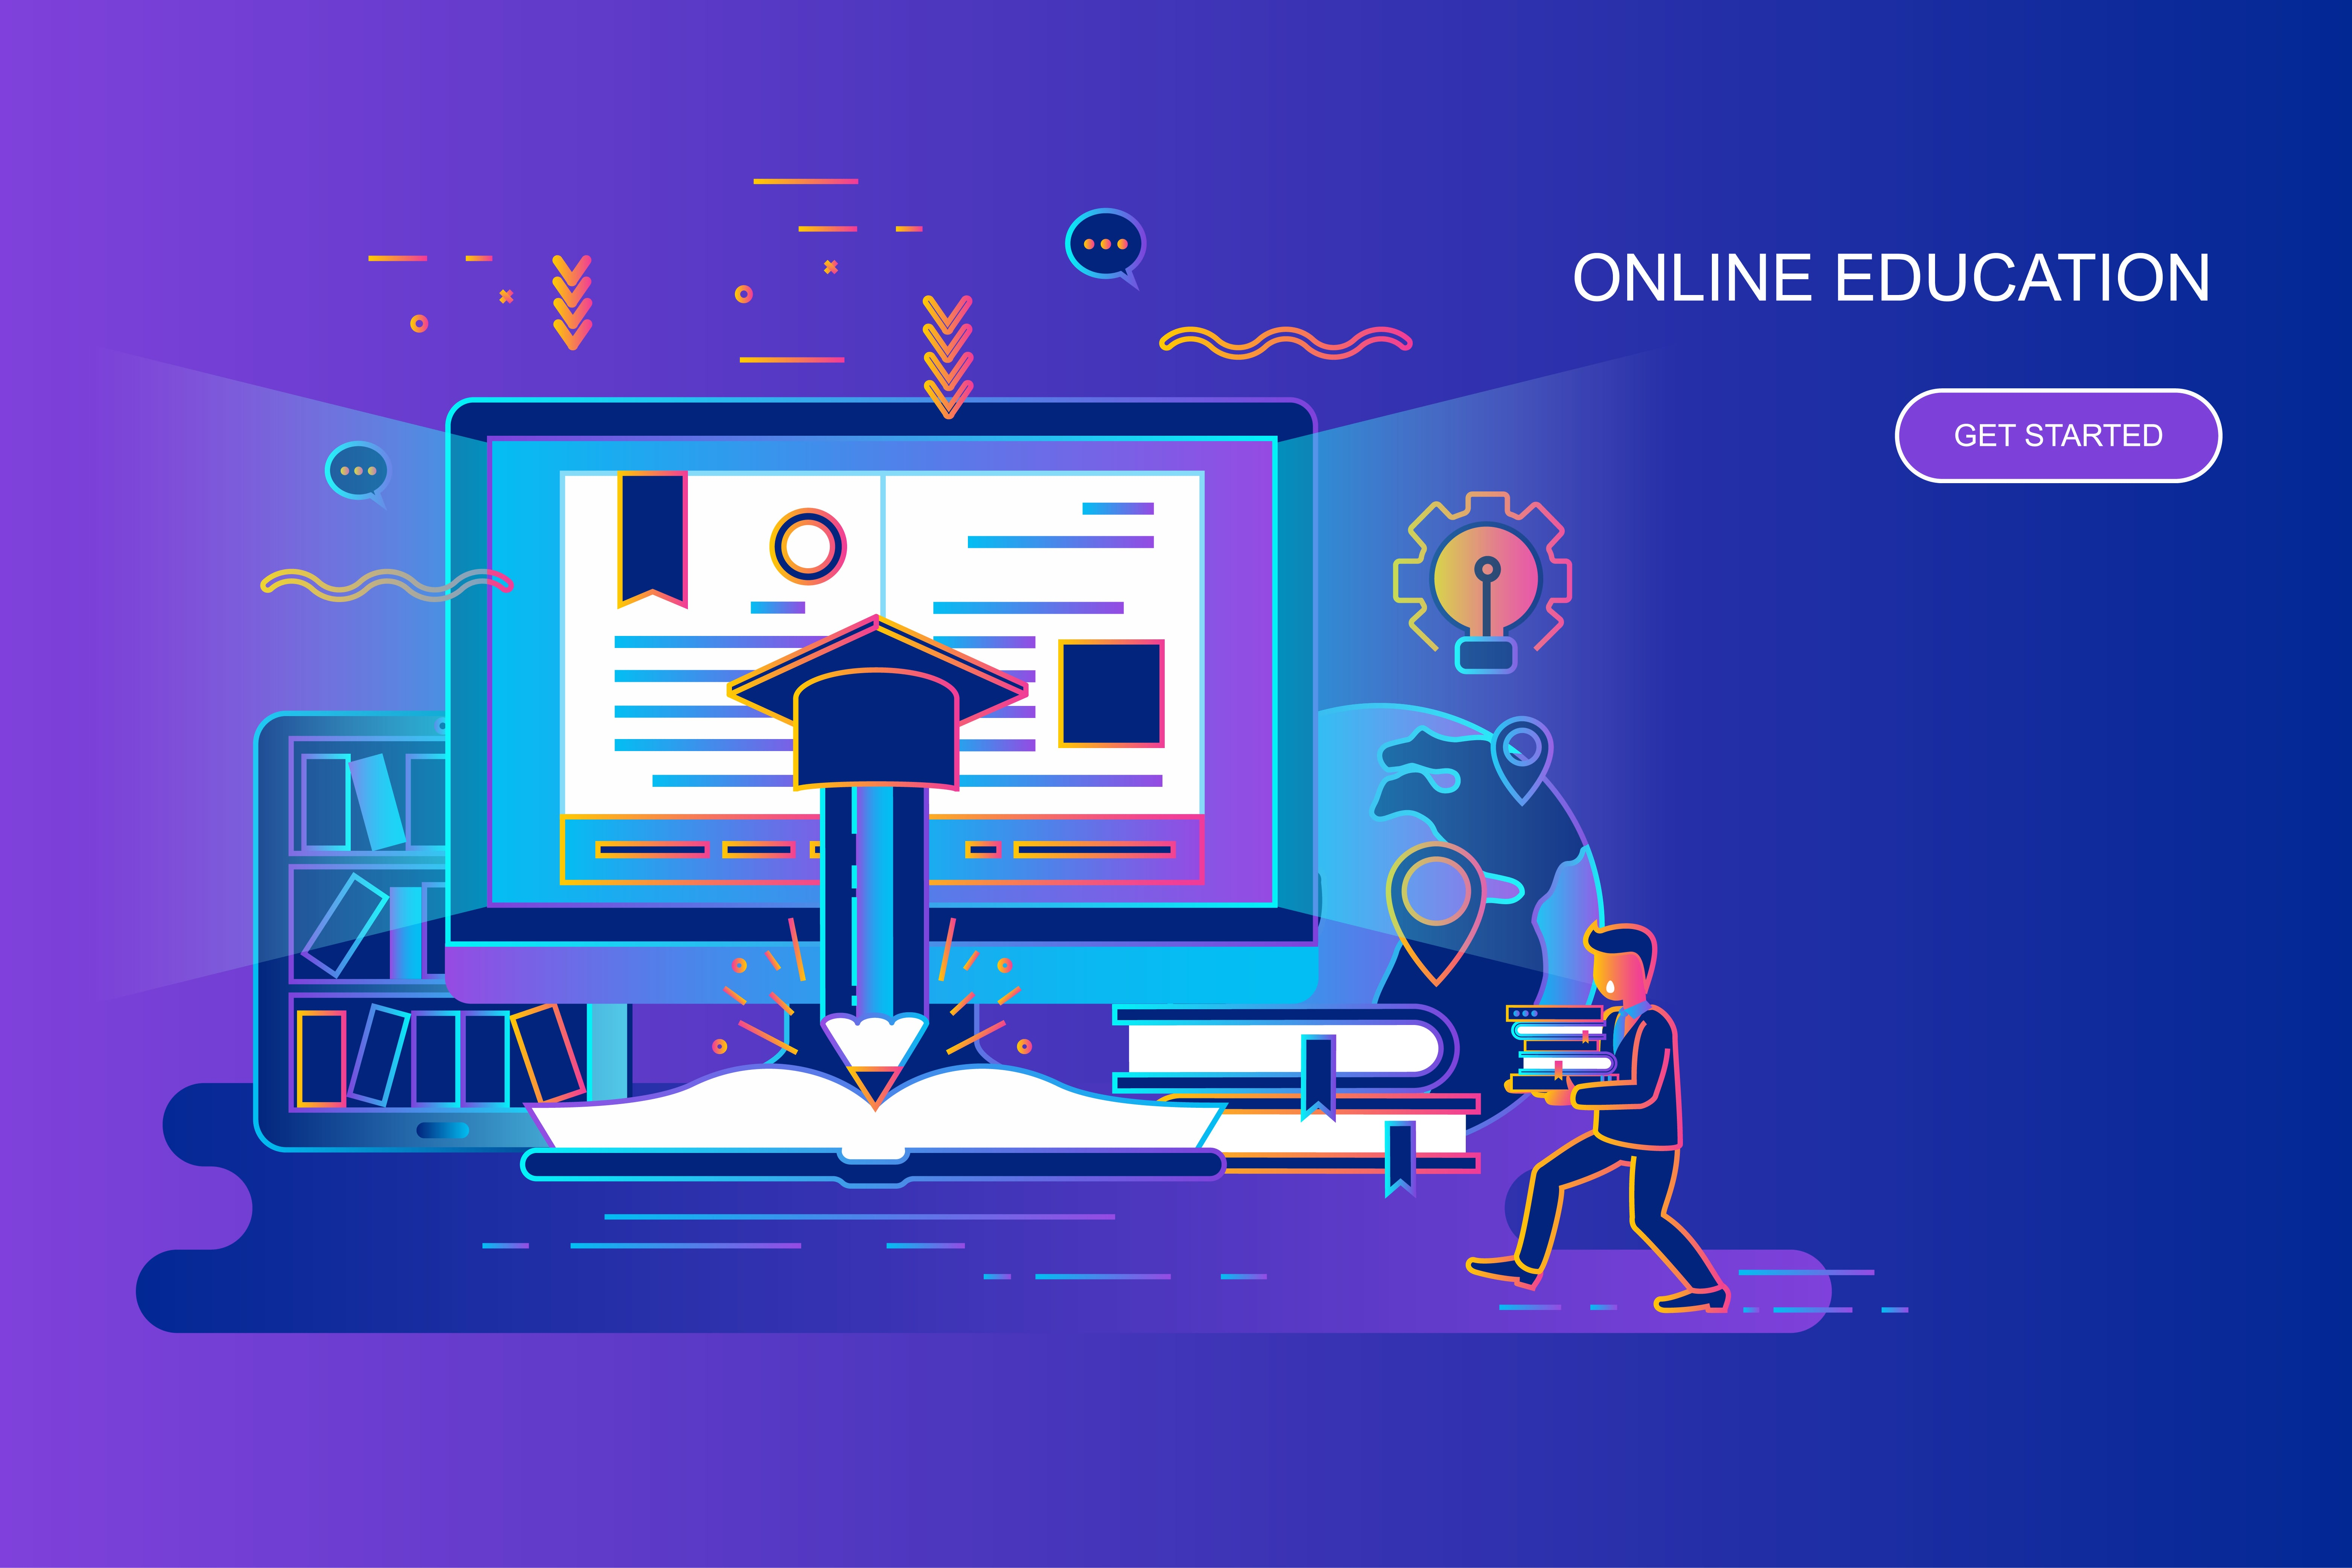 Modern gradient flat line concept web banner of online education with decorated small people character. Landing page template. Conceptual vector illustration for web and graphic design, marketing.